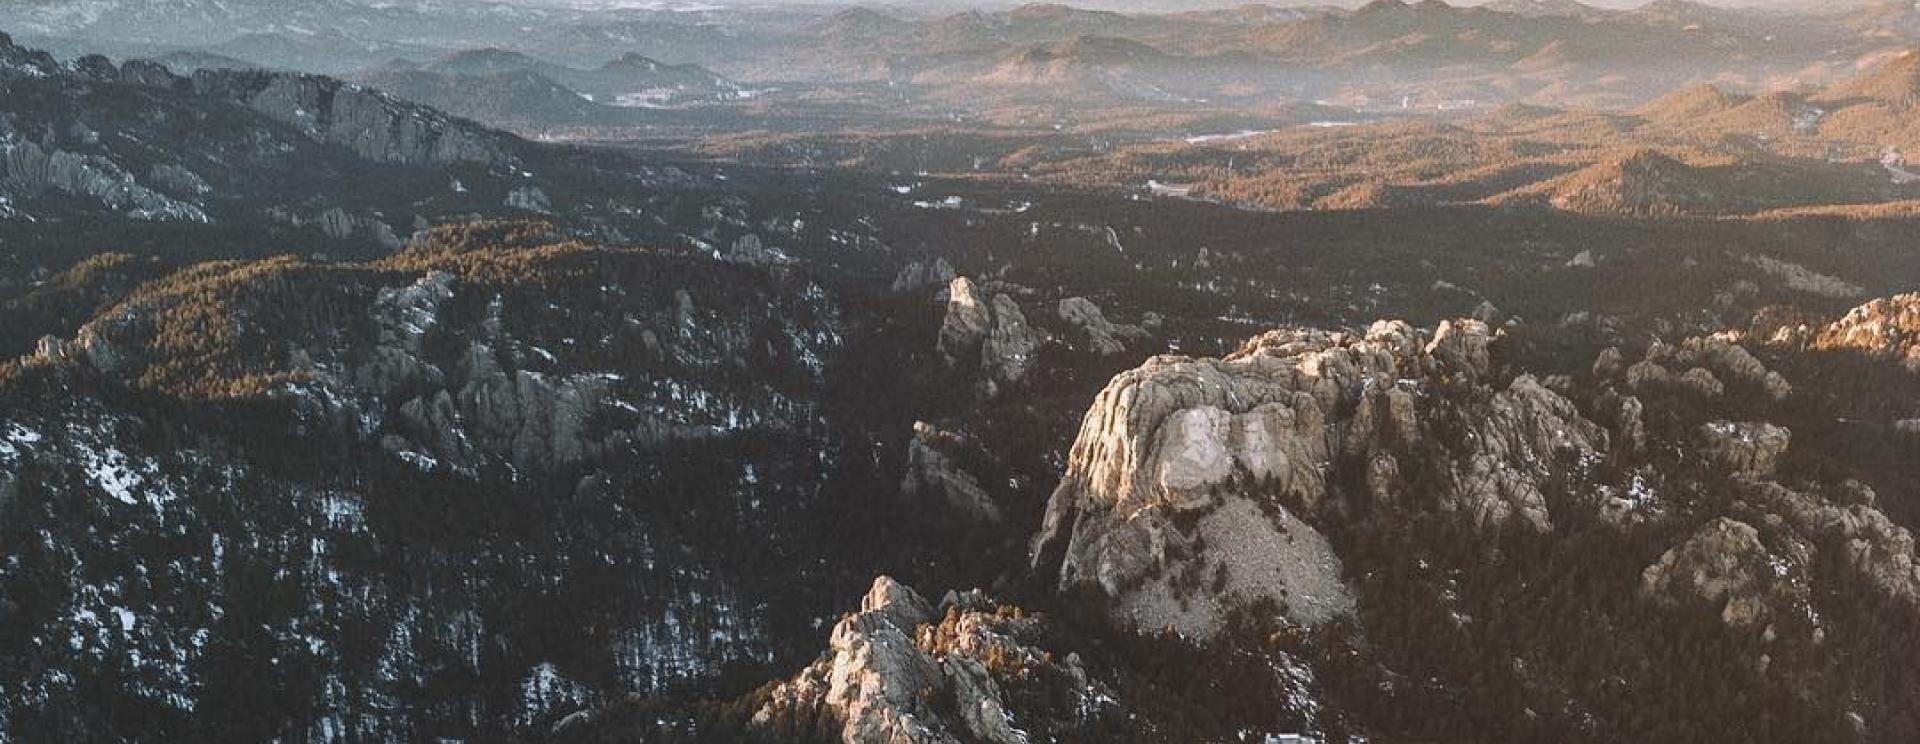 The 5 Most Remarkable Photos of the Black Hills in January 2019